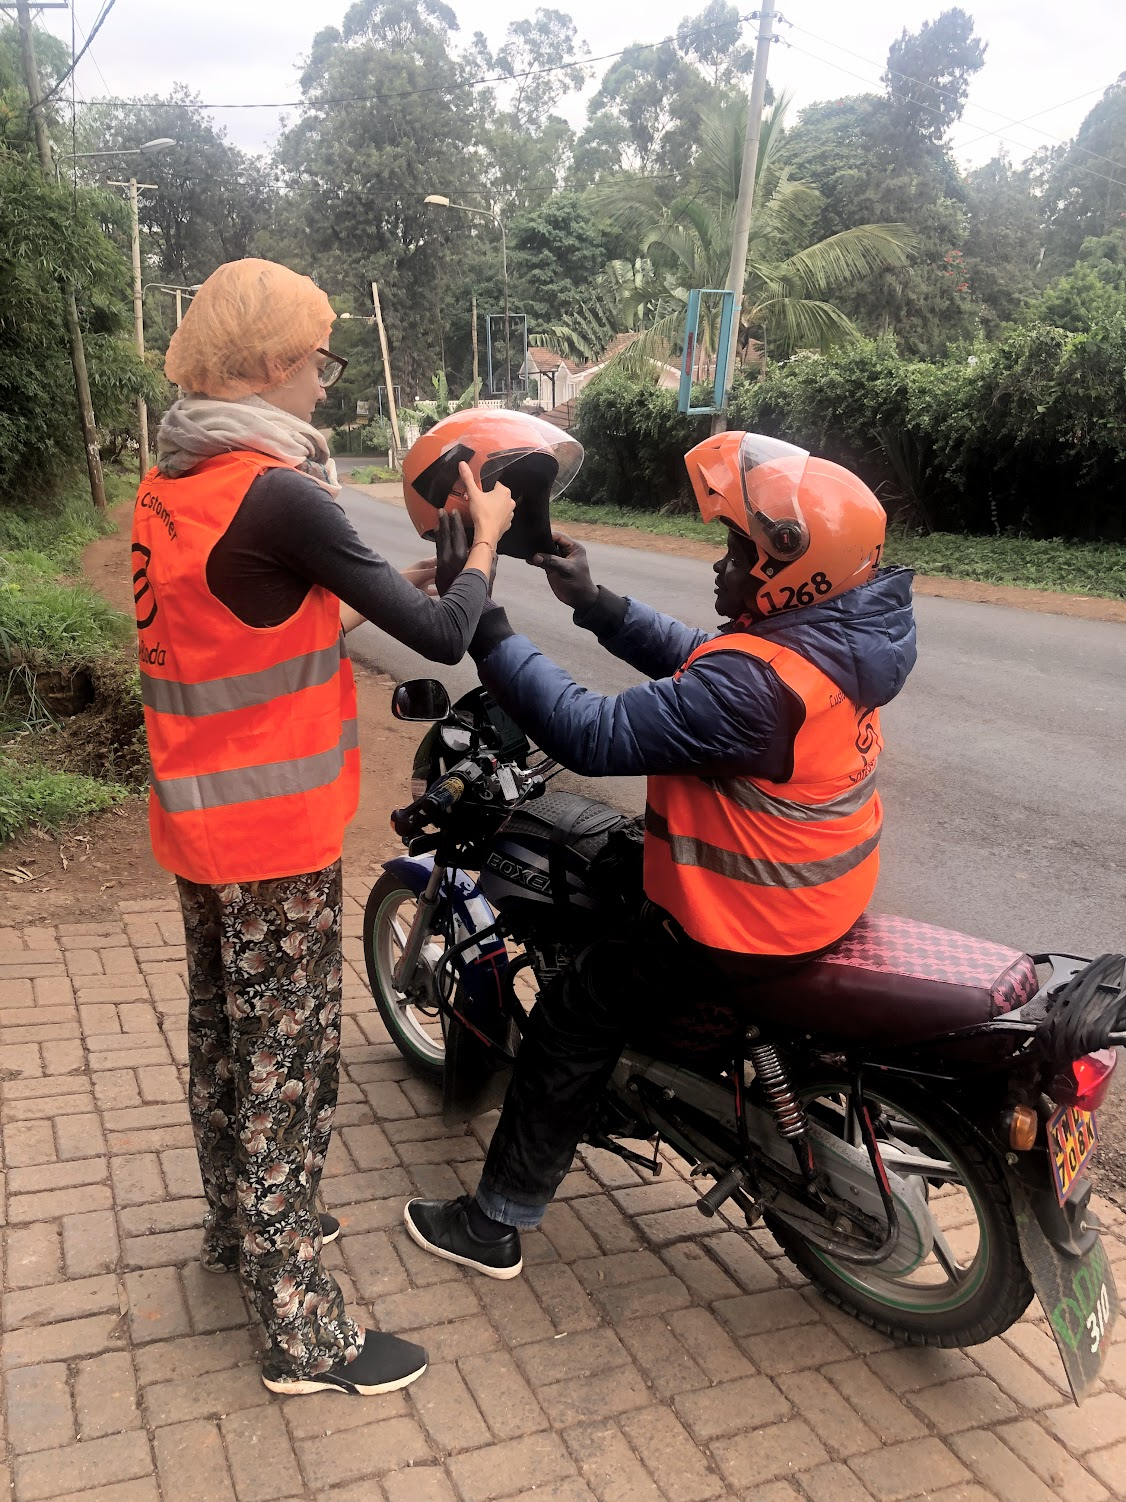 Taxi-bikes are very convenient to avoid traffic jams. Drivers are kind of safe but the helmets do not always close... Charlotte had the privilege of having a hygienic cap under the helmet. It was the only time unfortunately!